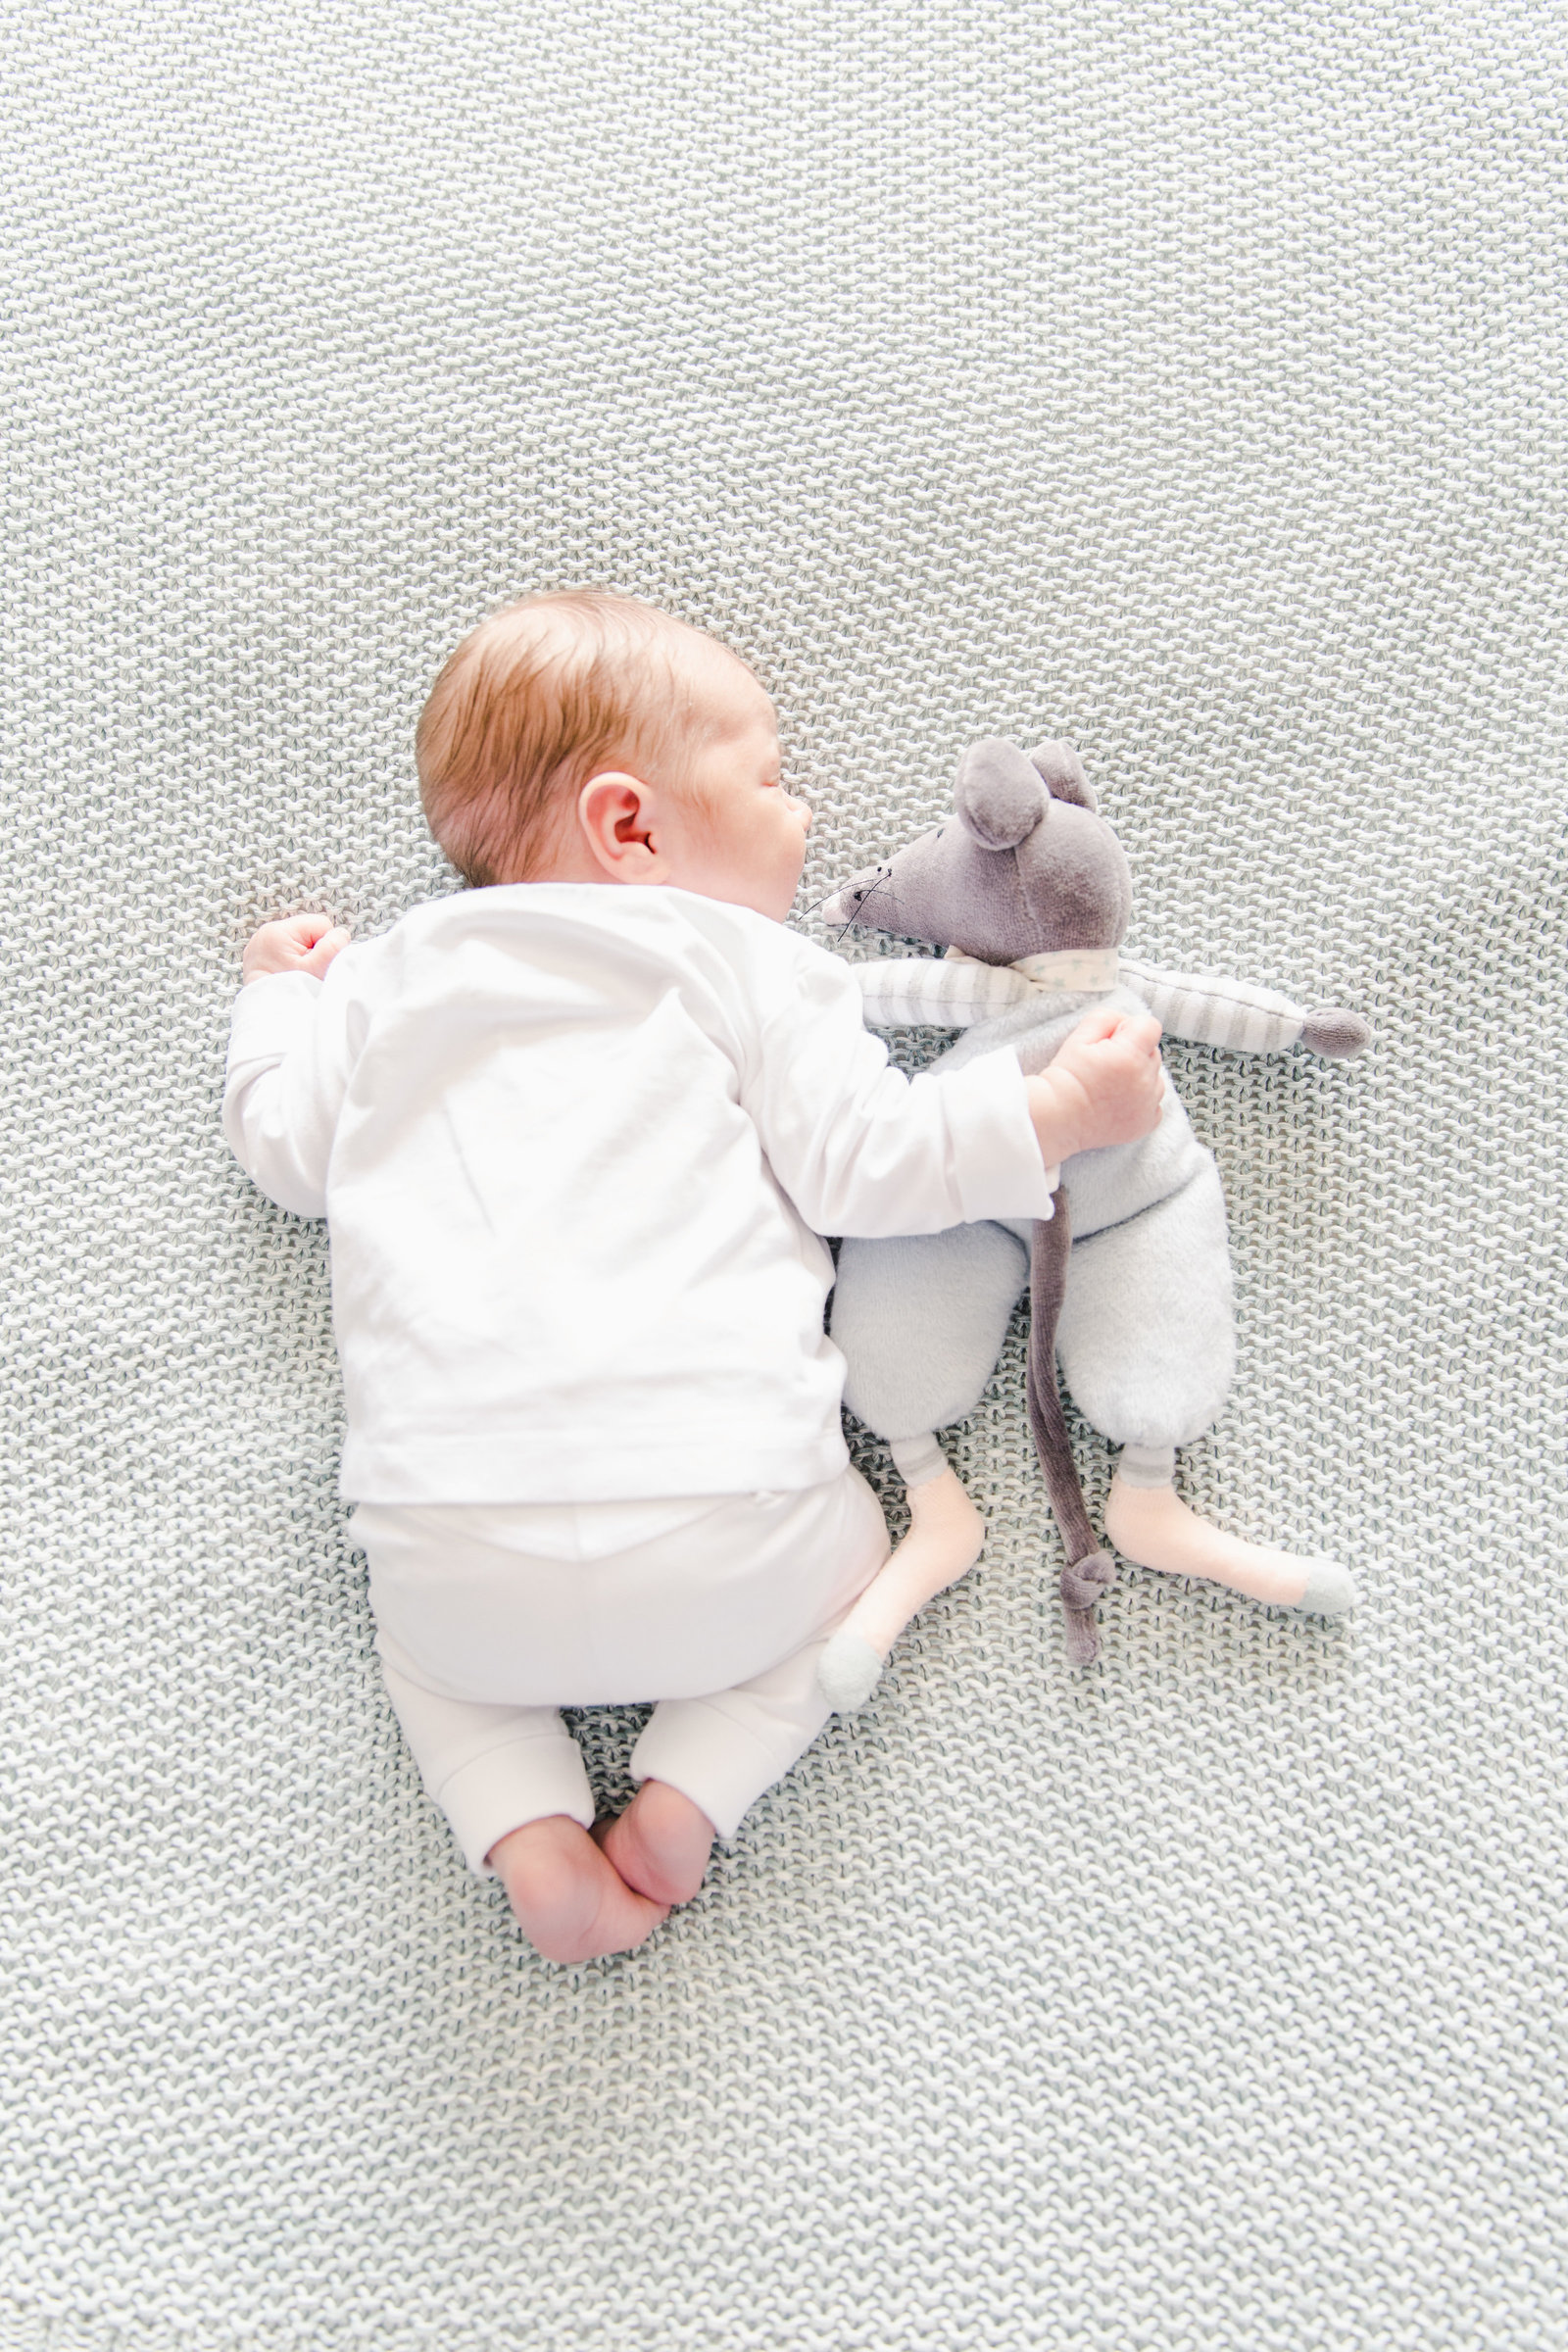 Shirley's Photography - Shirley van der Schans - Newborn- Lifestyle-45